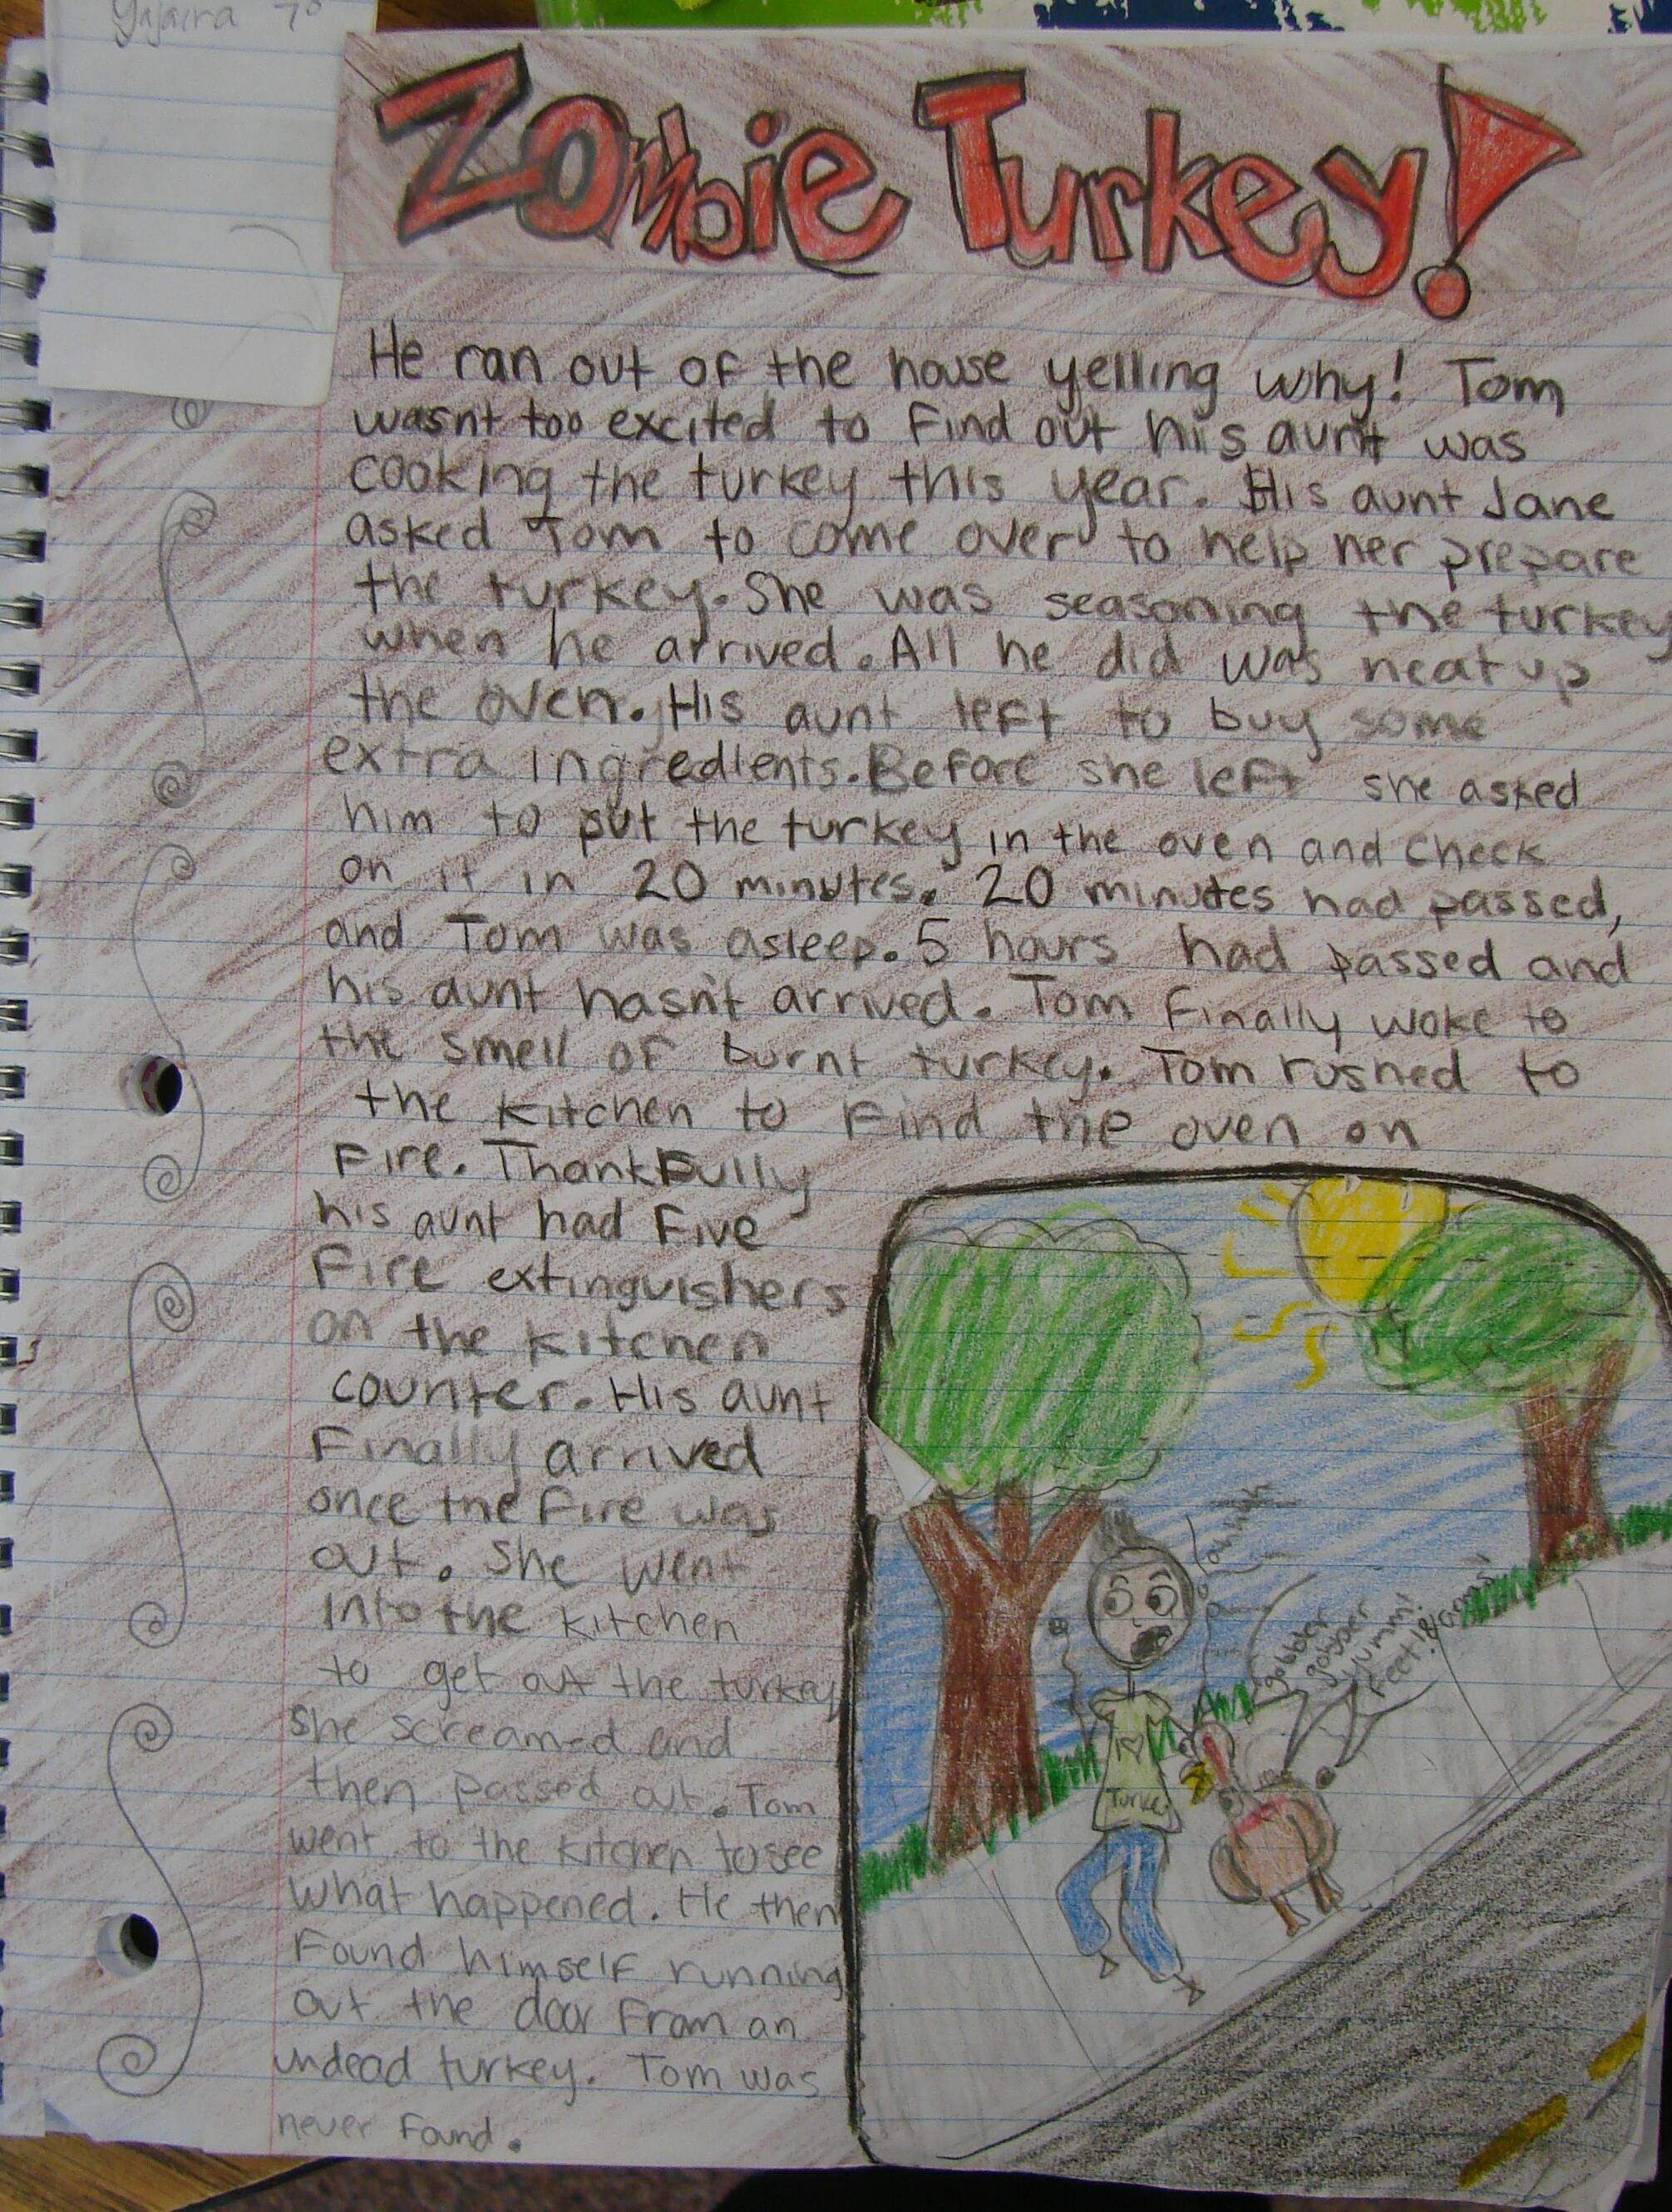 """Yajaira's """"Zombie Turkey"""" story totally stole a """"Mr. Stick of the Week"""" award!  These are the pages I know my students will read over and over again as they keep their writer's notebooks in the future.  Checkout Mr.Stick online at: http://corbettharrison.com/Mr_Stick.html"""